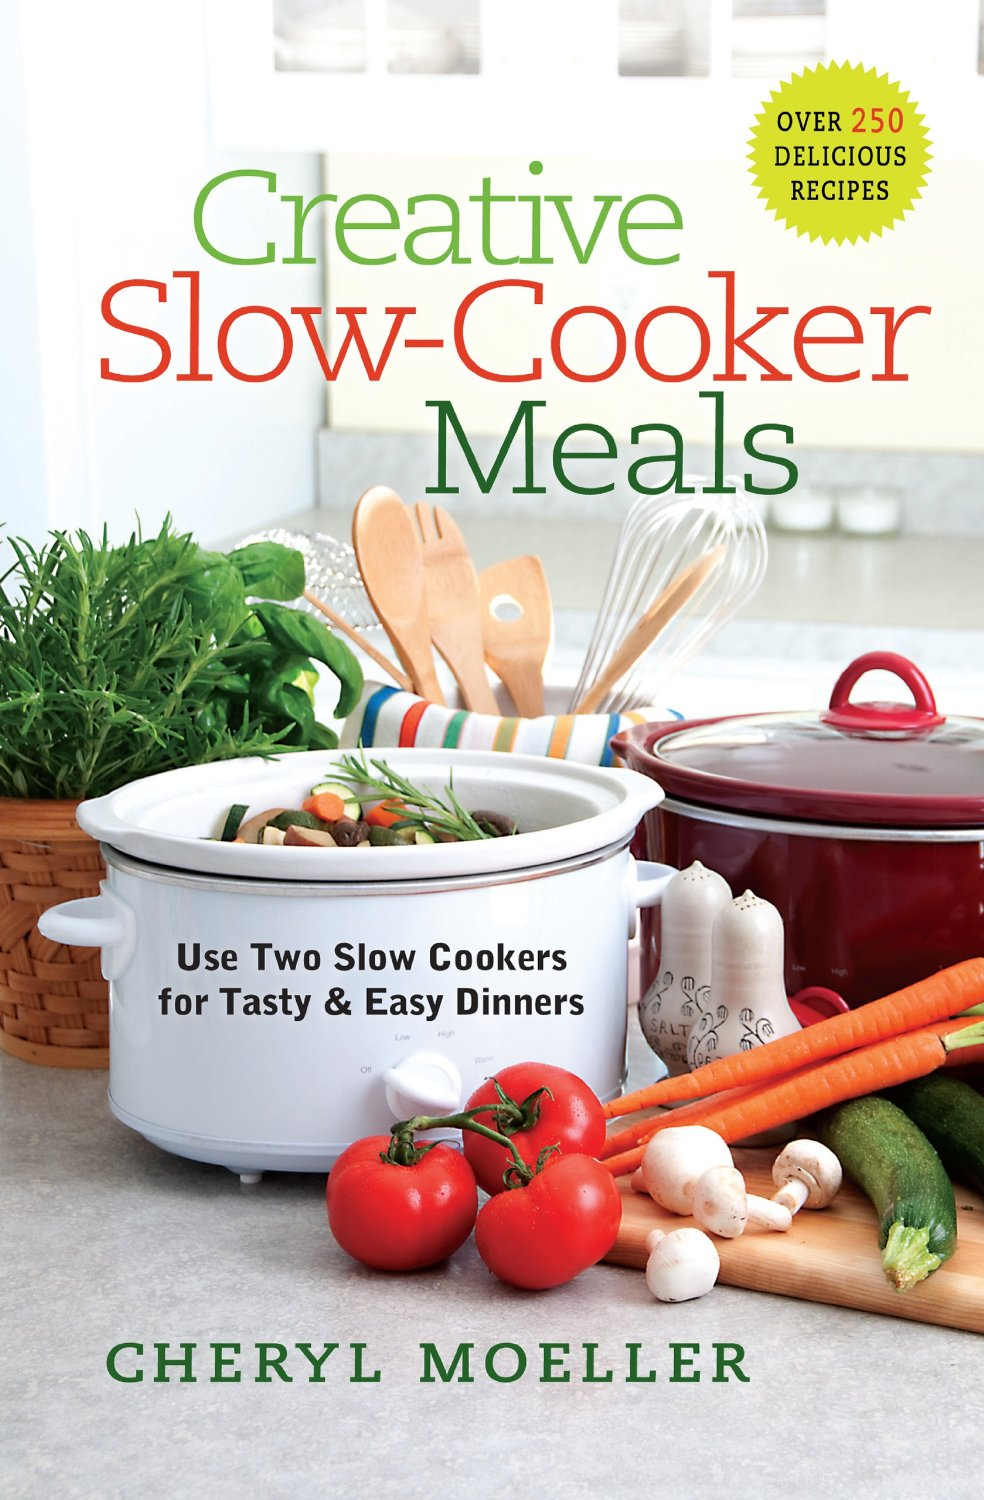 Creative Slow Cooker Meals by Cheryl Moeller